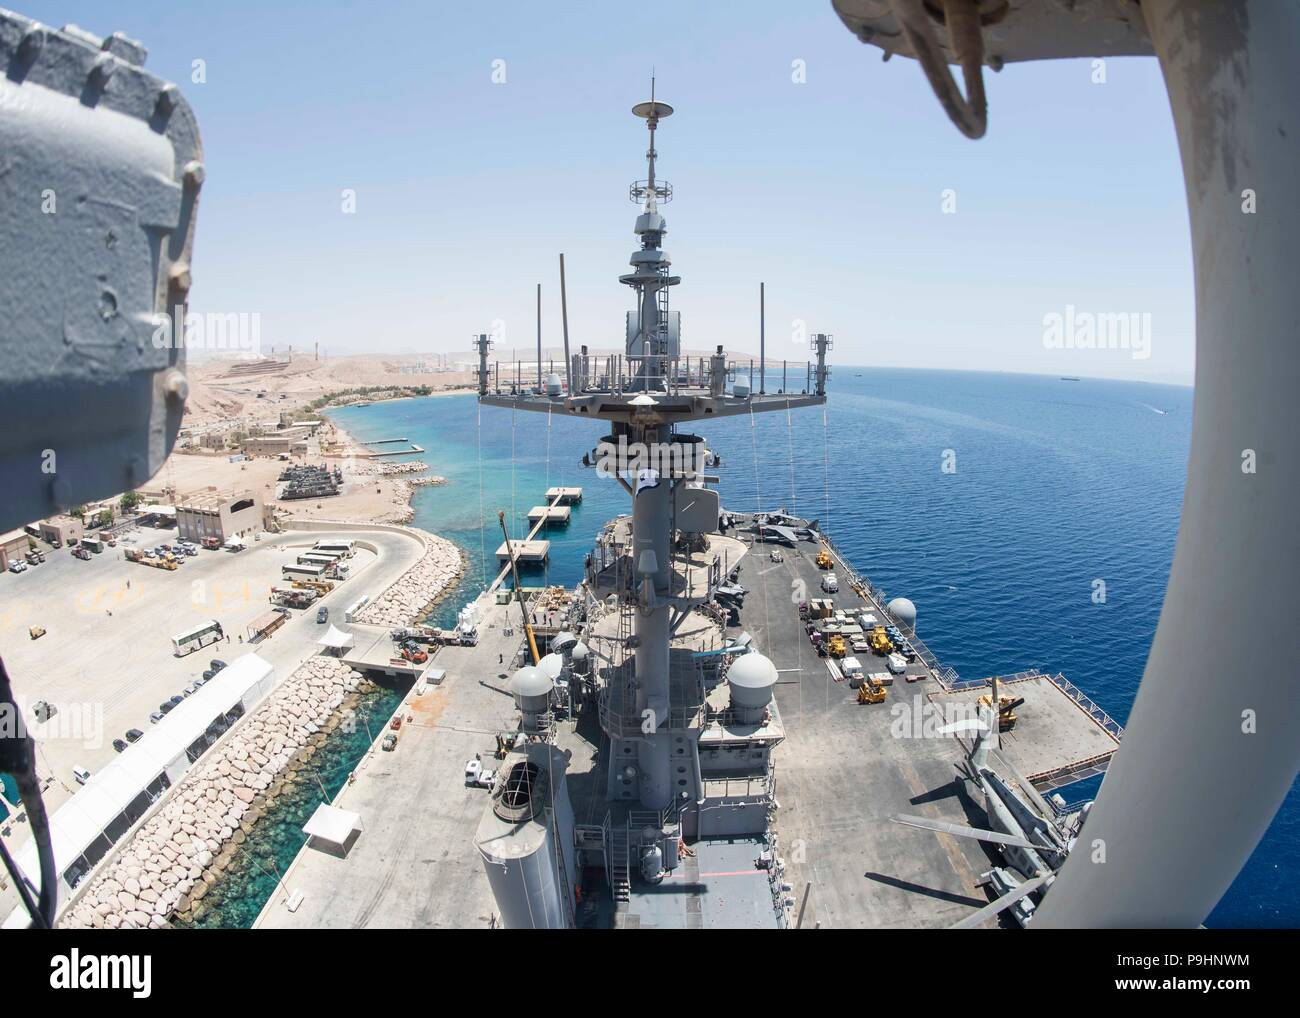 180709-N-ZG607-0097 AQABA, Jordan (July 9, 2018) The Wasp-class amphibious assault ship USS Iwo Jima (LHD 7) sits pier side Aqaba, Jordan. Iwo Jima is deployed to the U.S. 5th Fleet area of operations in support of naval operations to ensure maritime stability and security in the central region, connecting the Mediterranean and the Pacific through the western Indian Ocean and three strategic choke points. (U.S. Navy photo by Mass Communication Specialist 3rd Class Dominick A. Cremeans/Released) Stock Photo